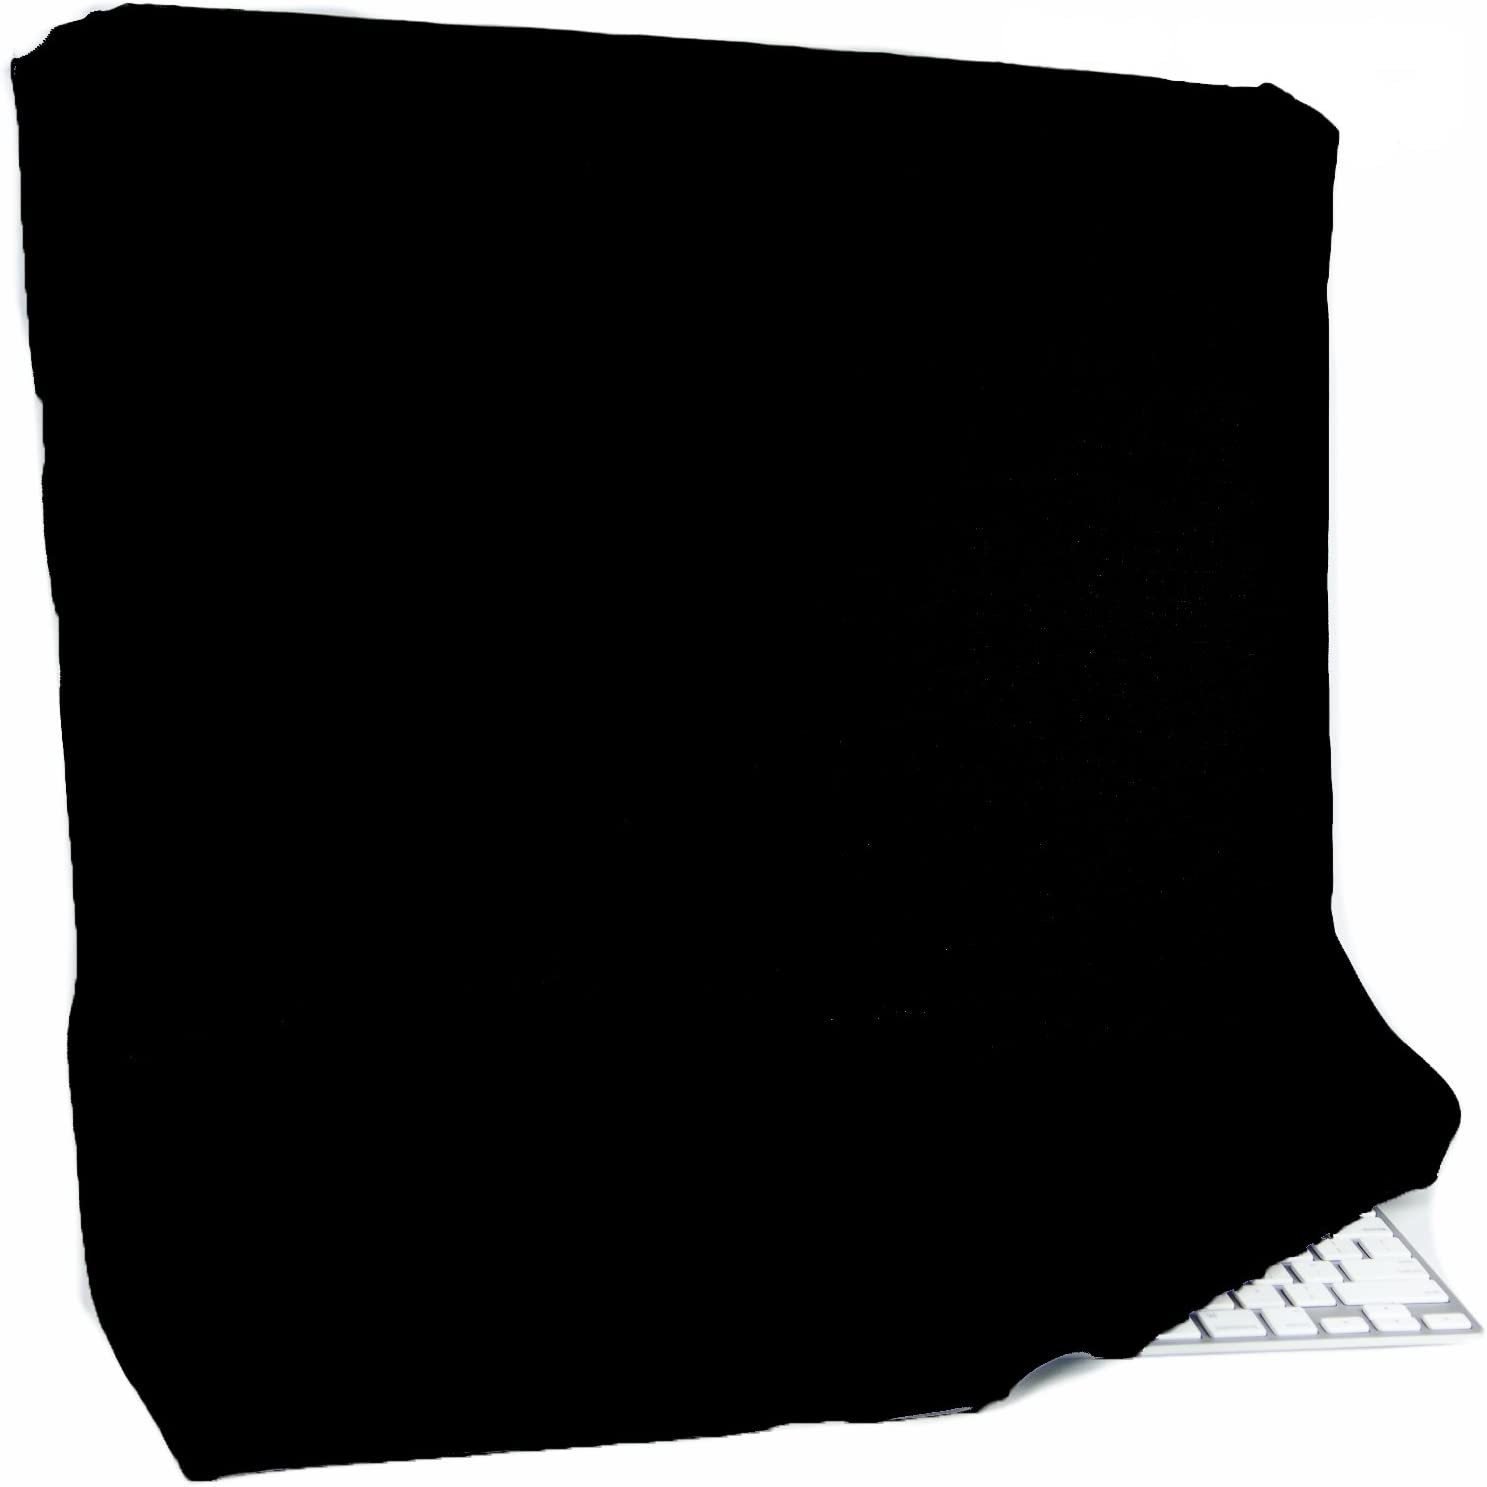 """Kuzy - 27-inch Black Full Cover for Apple Thunderbolt and/or Cinema Display 27"""" LCD Dust Cover, Display Protector Model: A1316 and A1407 - Black"""